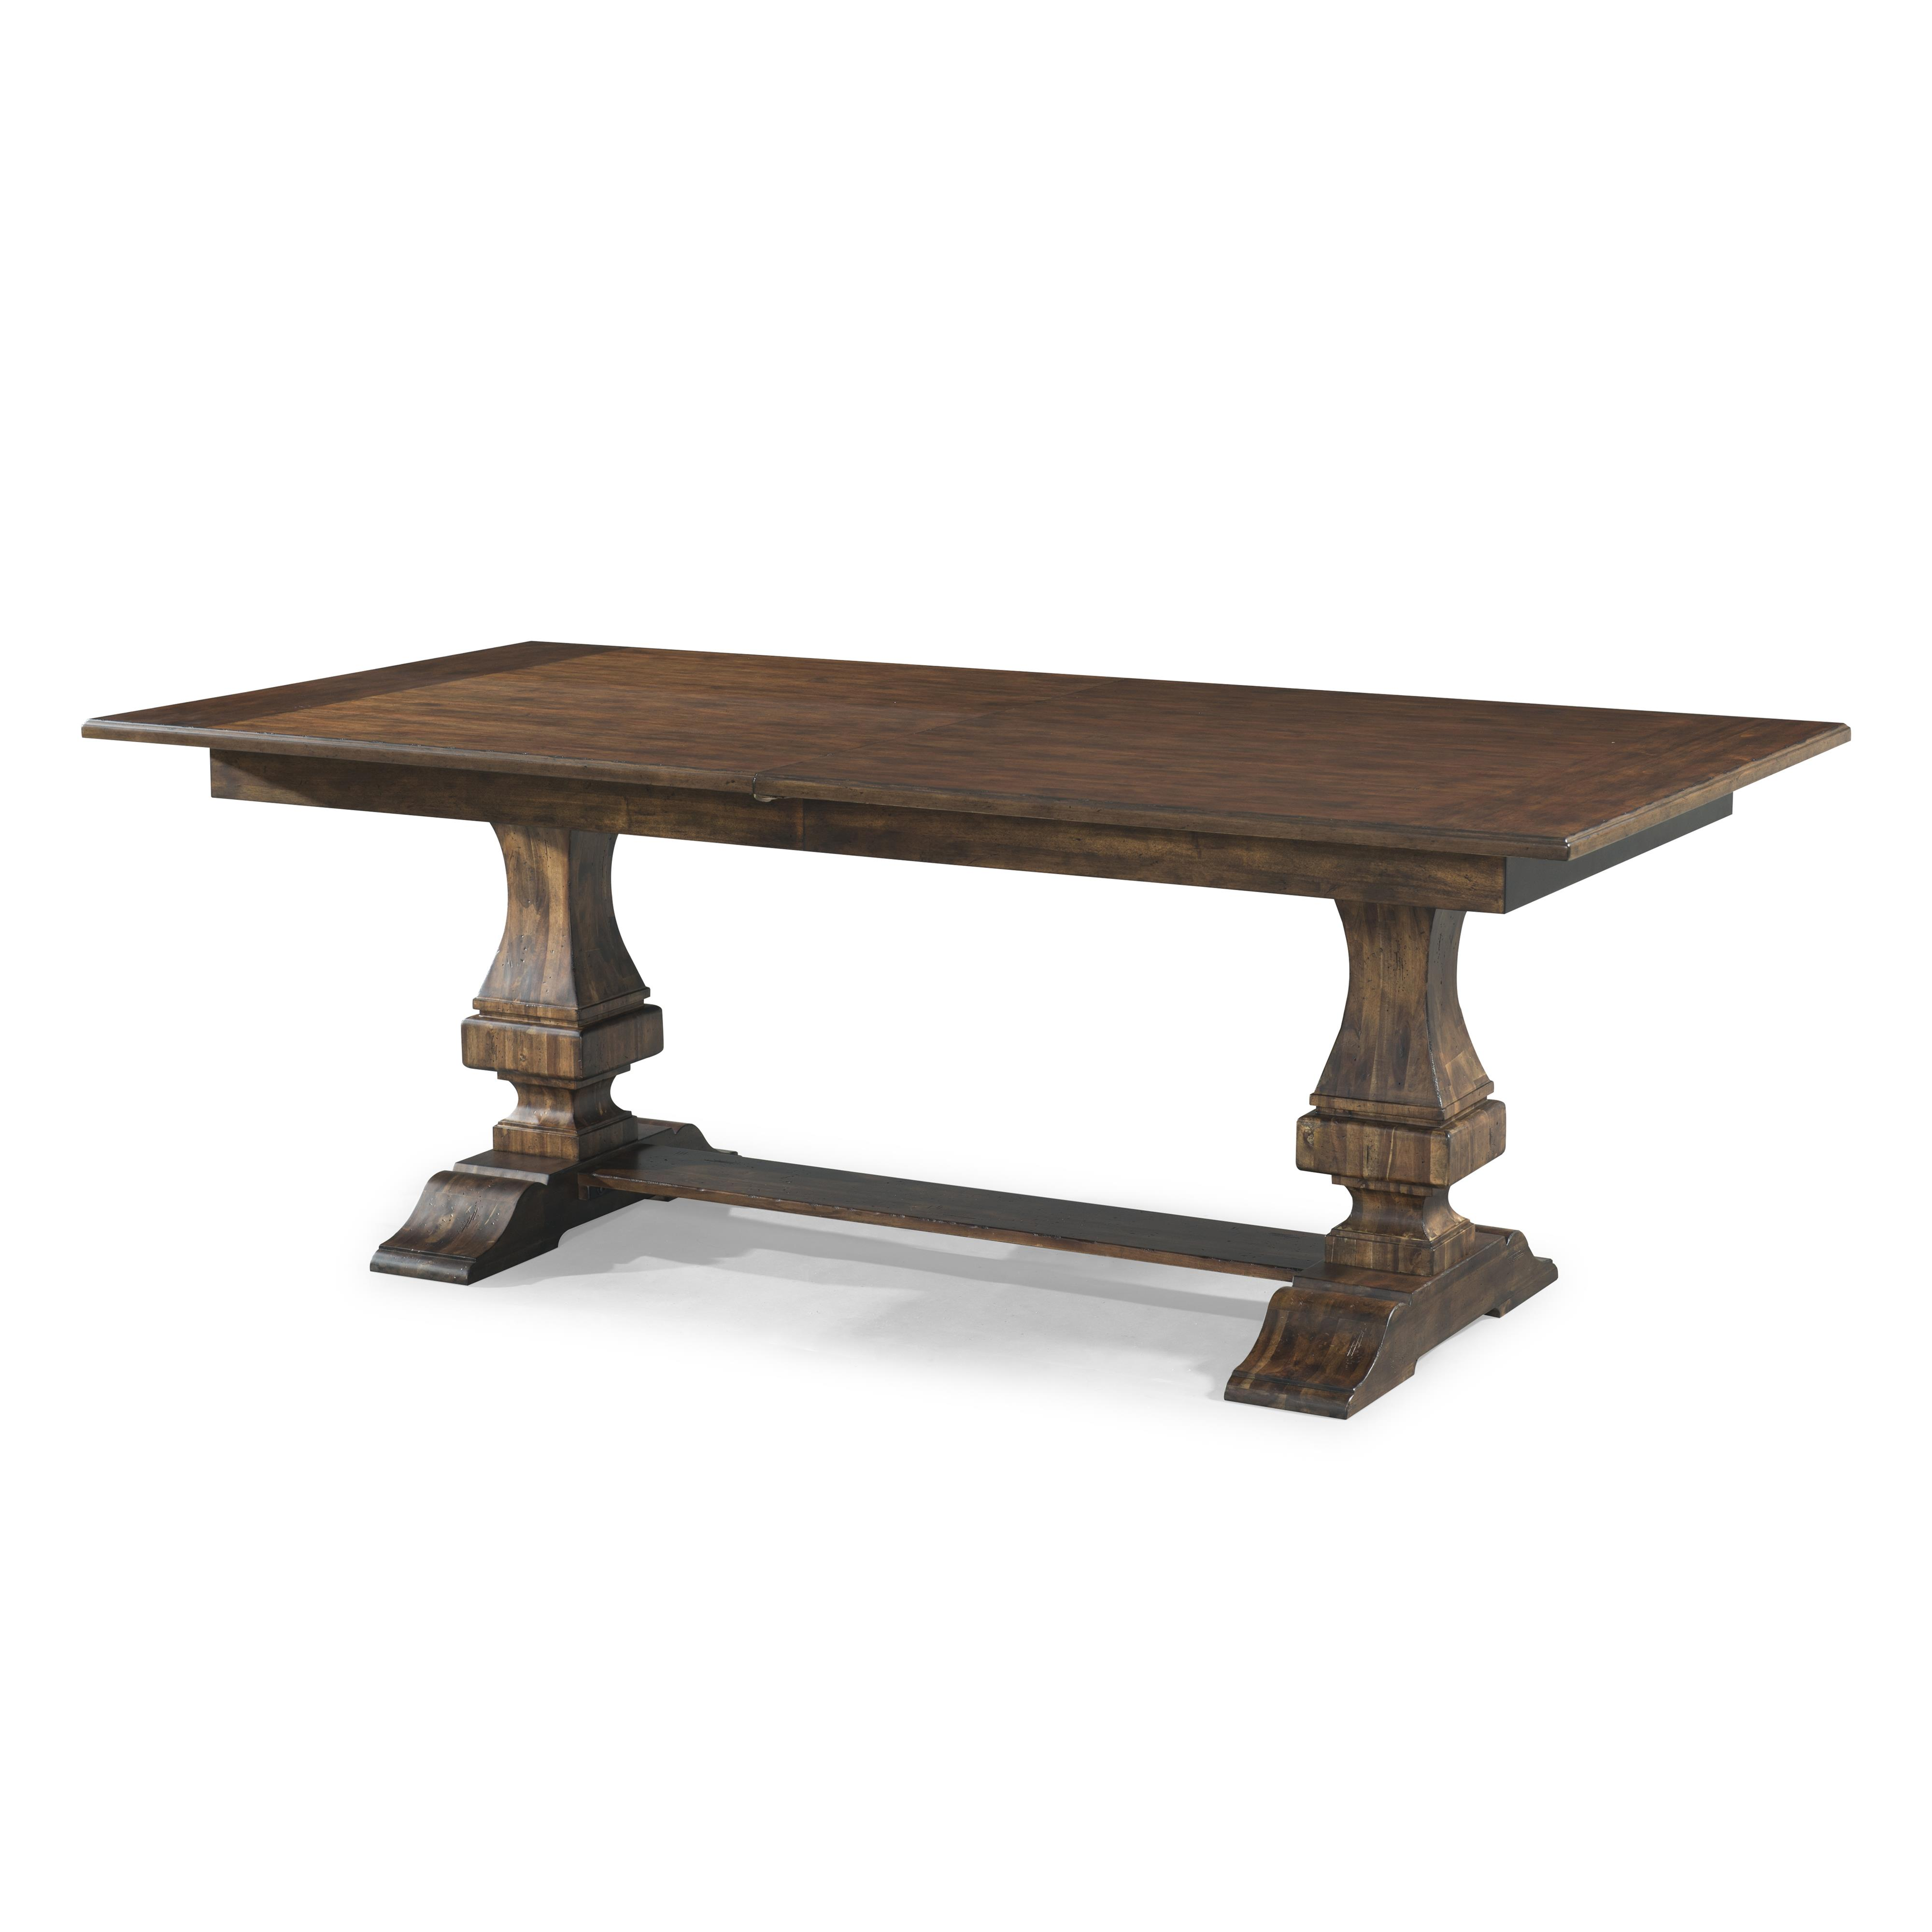 Trisha yearwood home collection by klaussner trisha for Dining room tables trestle